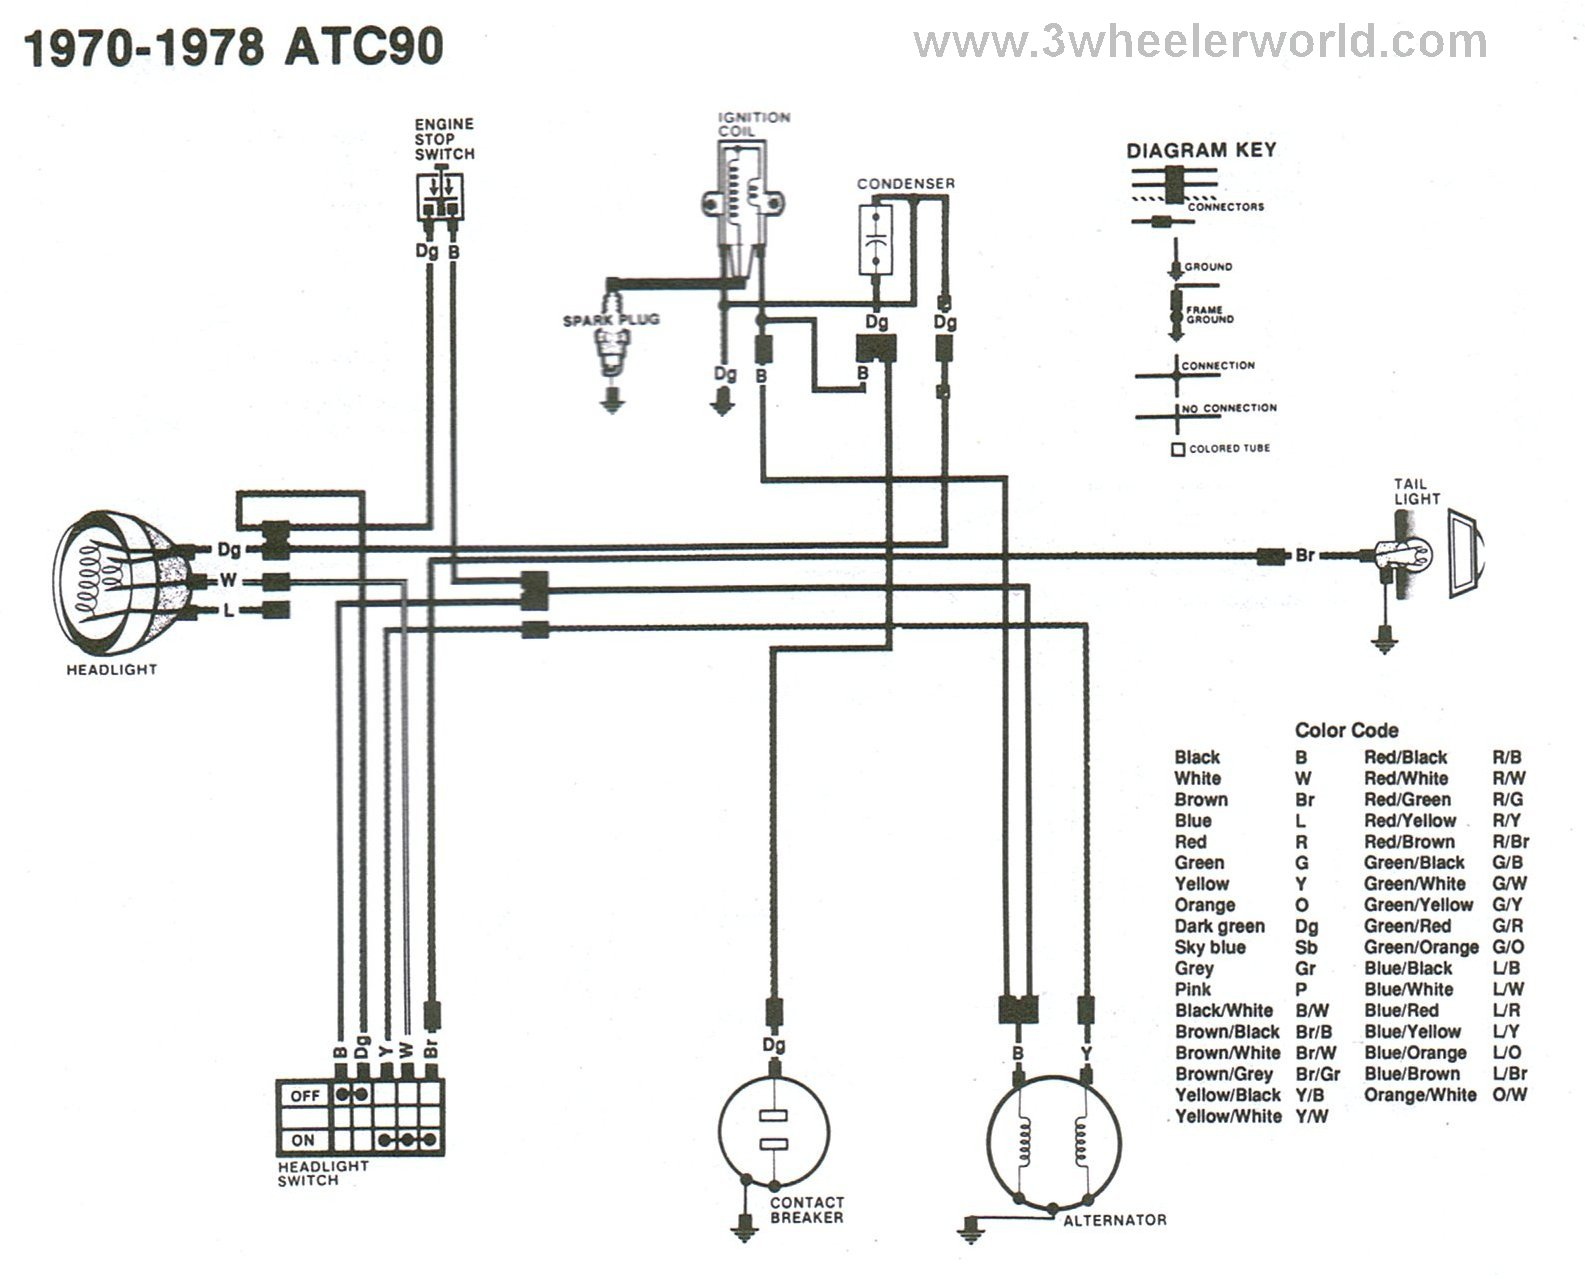 ATC90x70Thru78 3 wheeler world tech help honda wiring diagrams  at virtualis.co